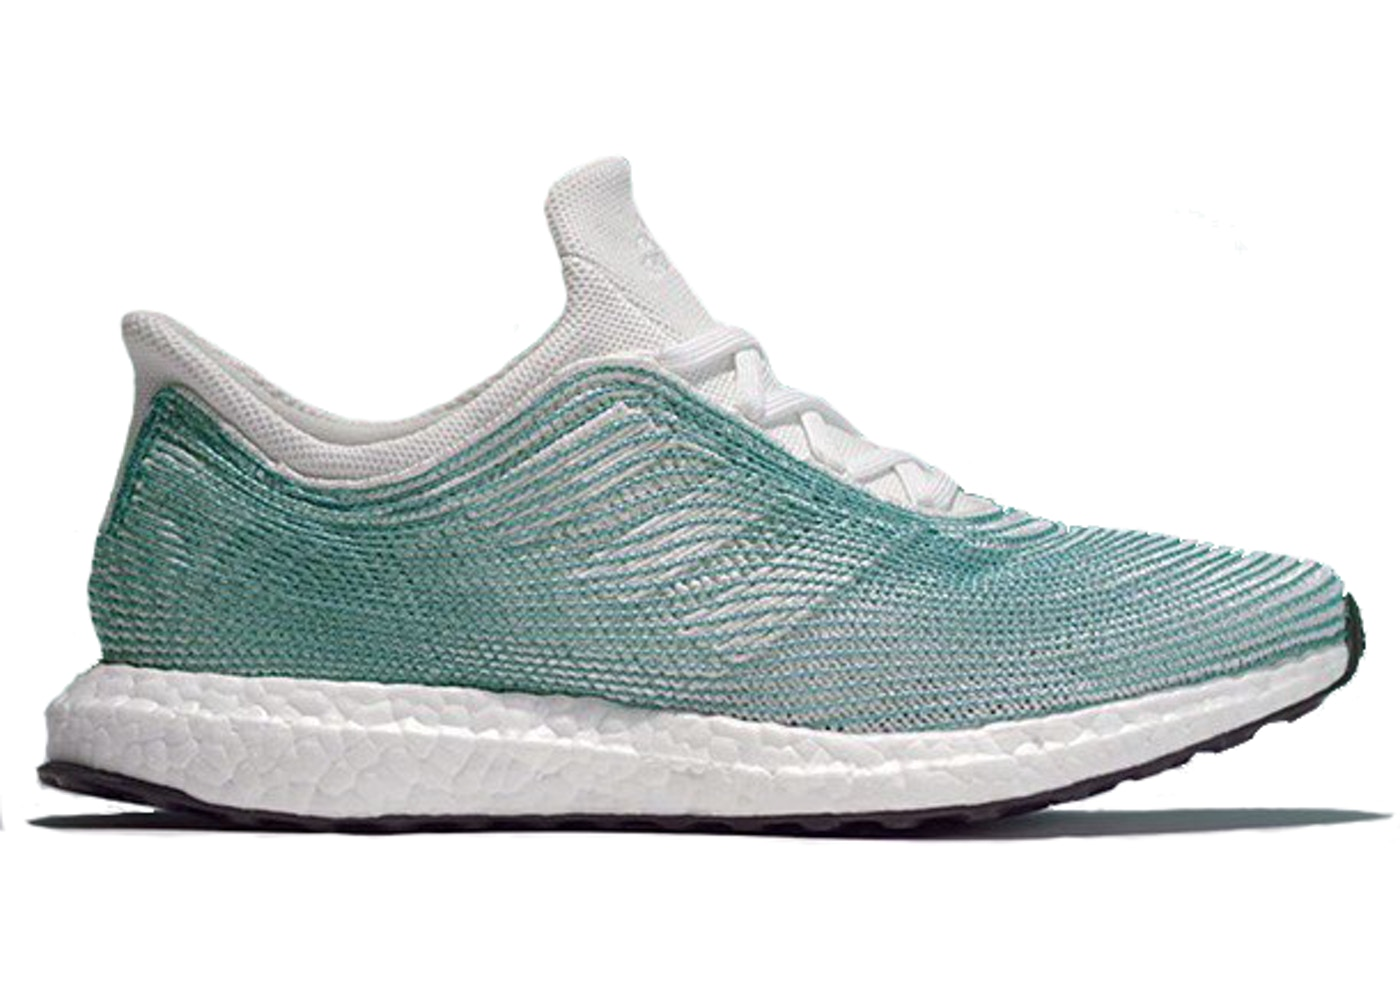 huge discount 12c9a 52076 adidas Ultra Boost Uncaged Parley For the Oceans